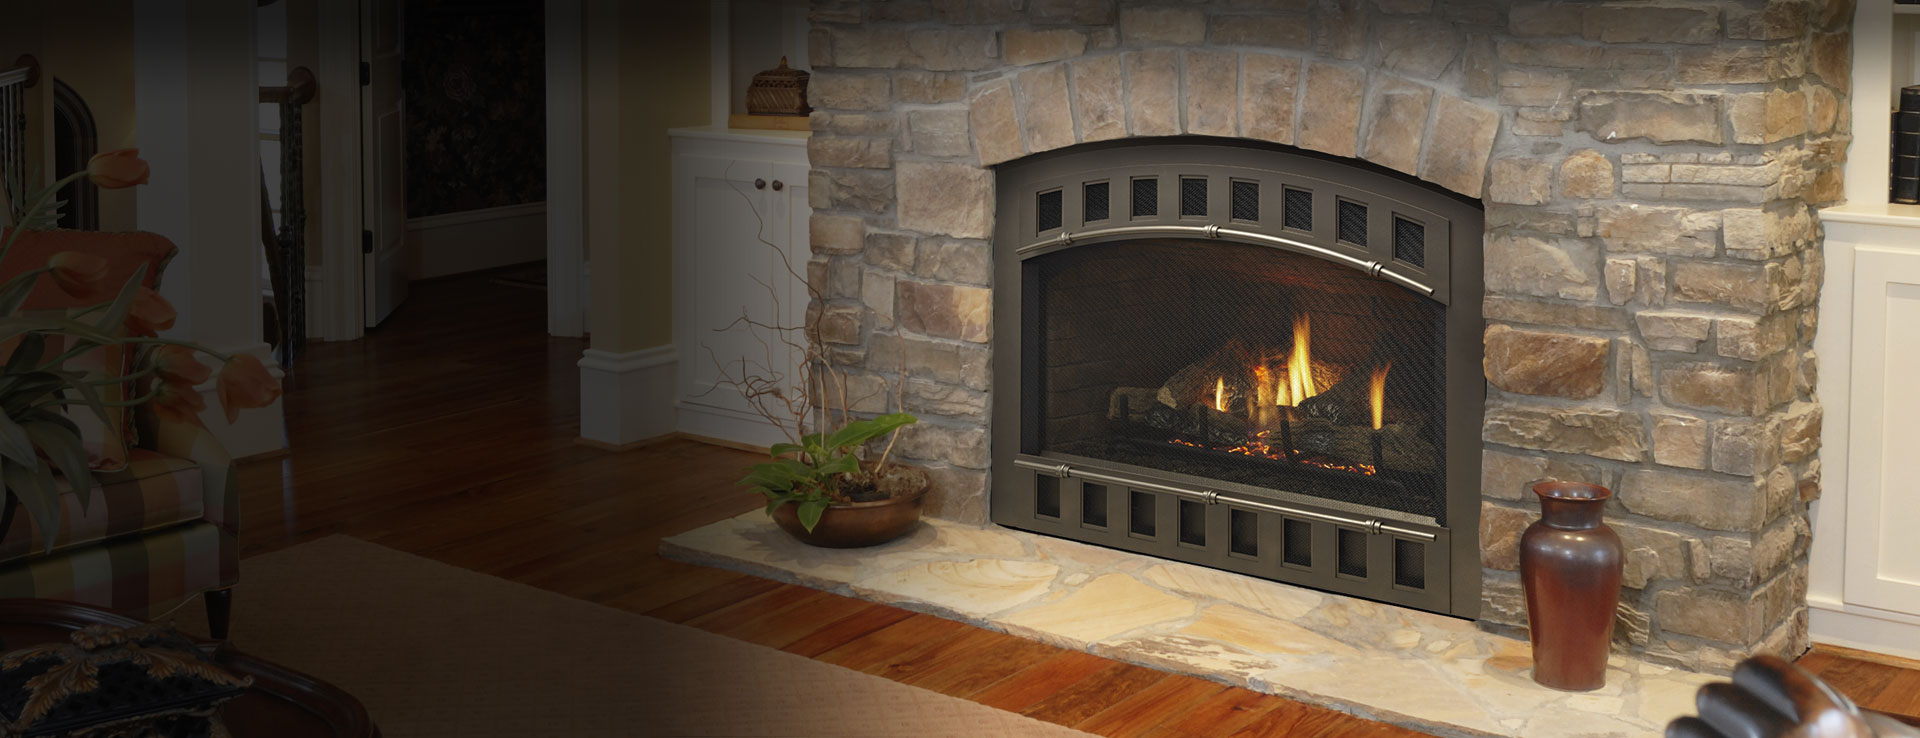 high efficiency caliber nxt gas fireplaces heatilator